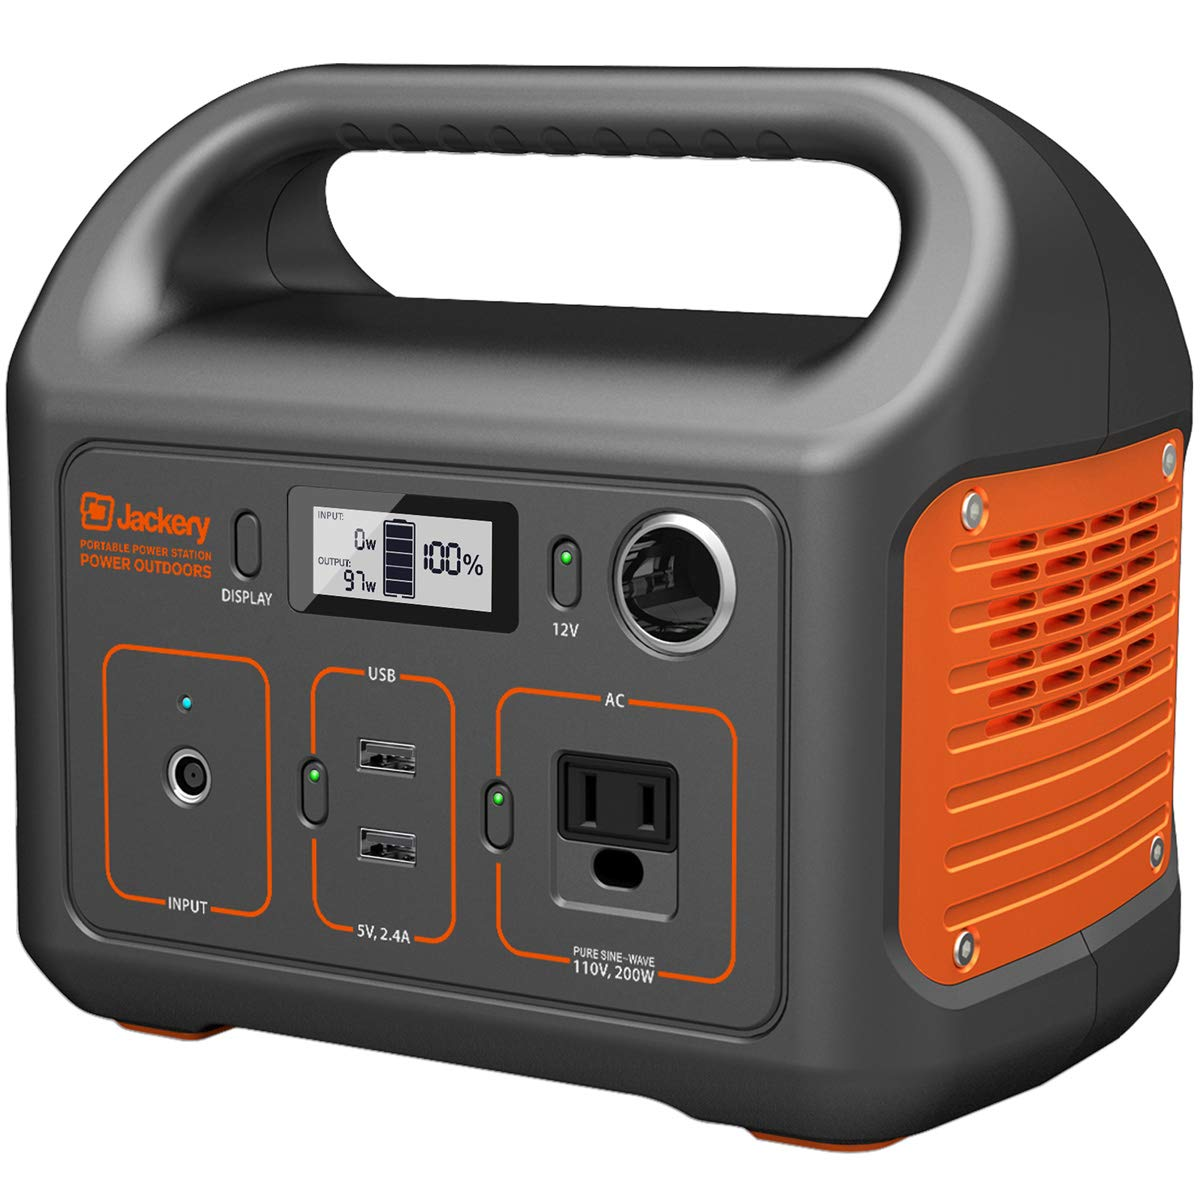 Jackery Portable Power Station Explorer 240, 240Wh Backup Lithium Battery, 110V 200W Pure Sine Wave AC Outlet, Solar Generator Solar Panel Optional for Outdoors Camping Travel Hunting Emergency